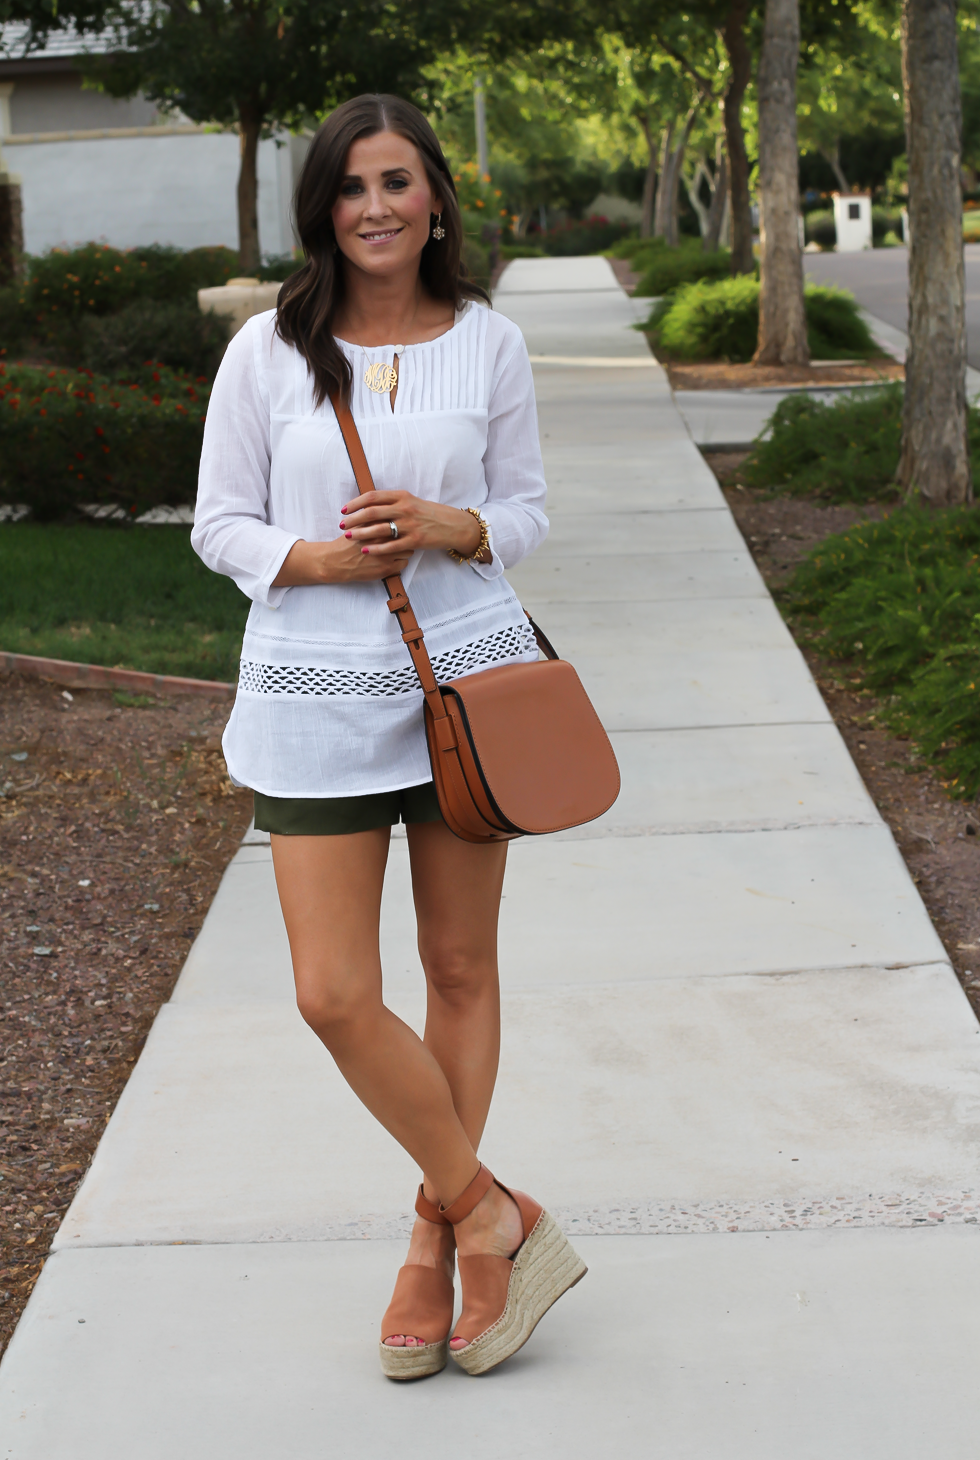 Gauze White Lace Tunic, Green Linen Shorts, Brown Suede Espadrilles, Brown Leather Crossbody Bag, Old Navy, J.Crew, Chloe, Tory Burch 9